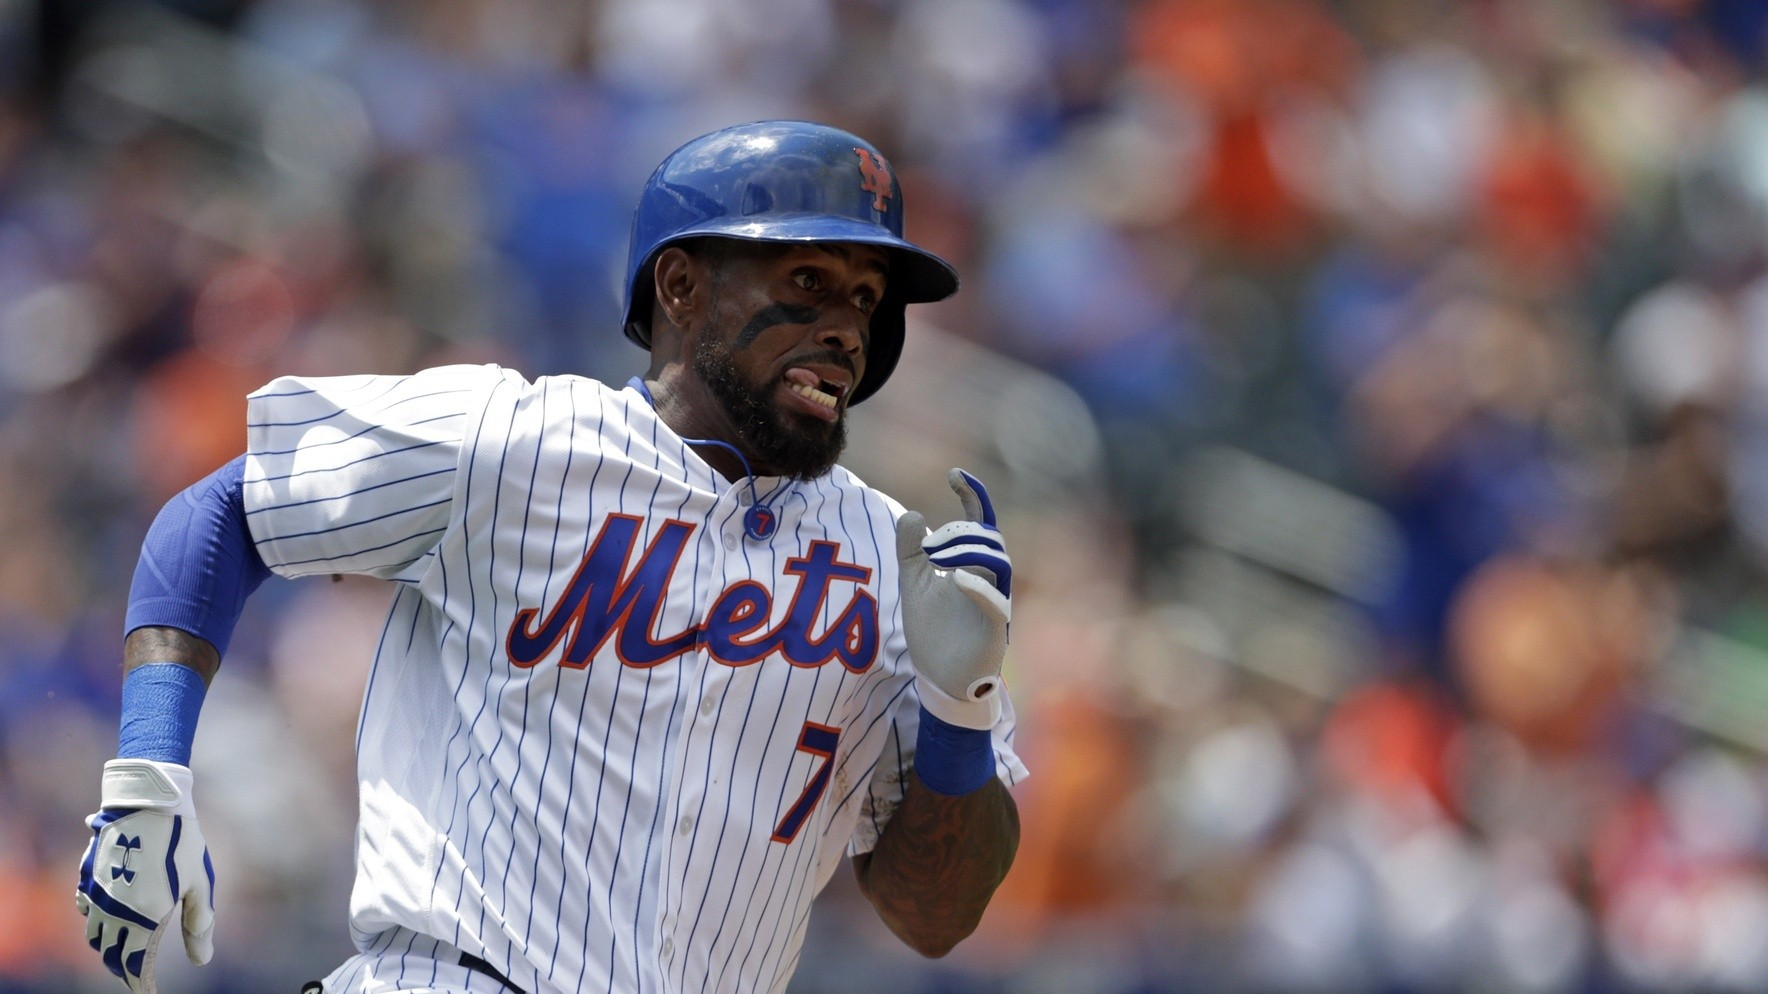 Jose Reyes And Baseball's History Of Looking The Other Way